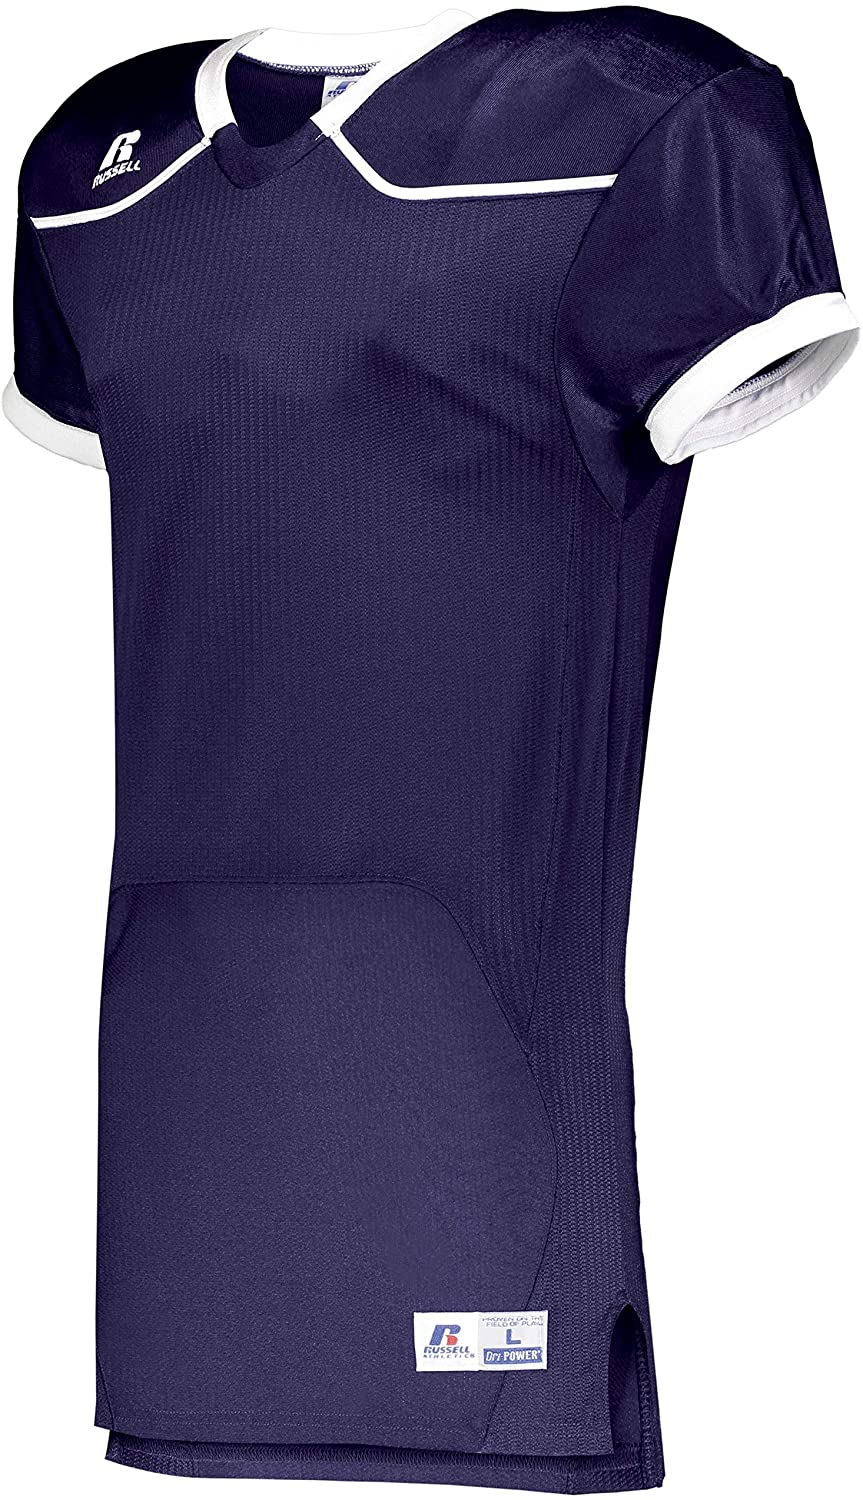 Russell Color Block Game Jersey (Home) - S57Z7H Purple/White